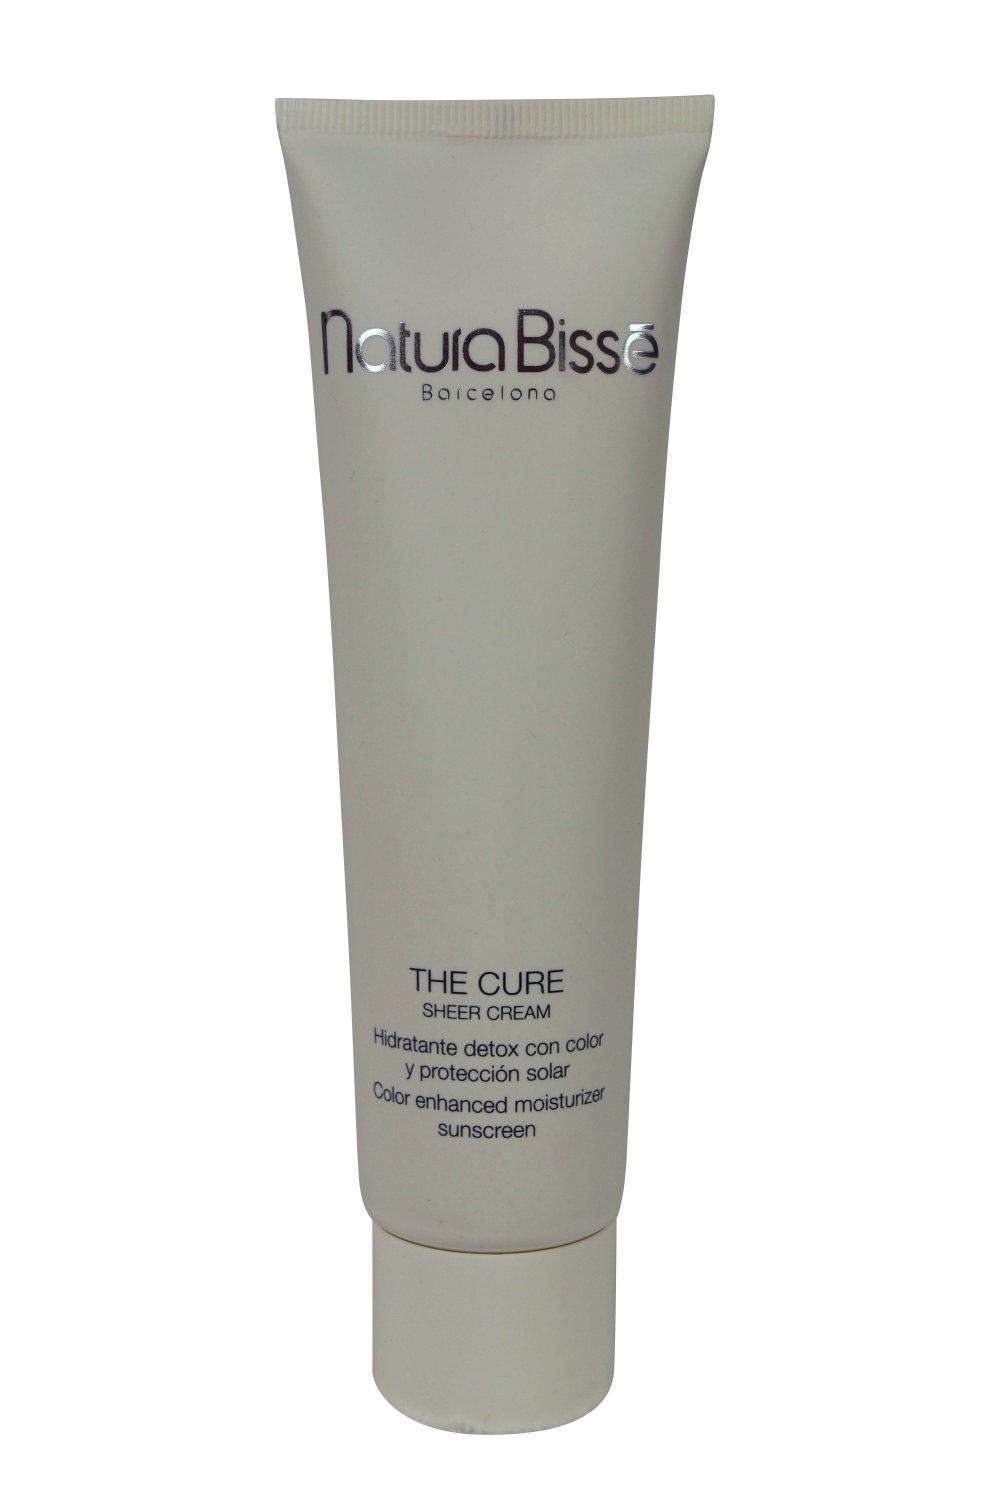 Natura Bisse The Cure Sheer Cream 3.5 oz